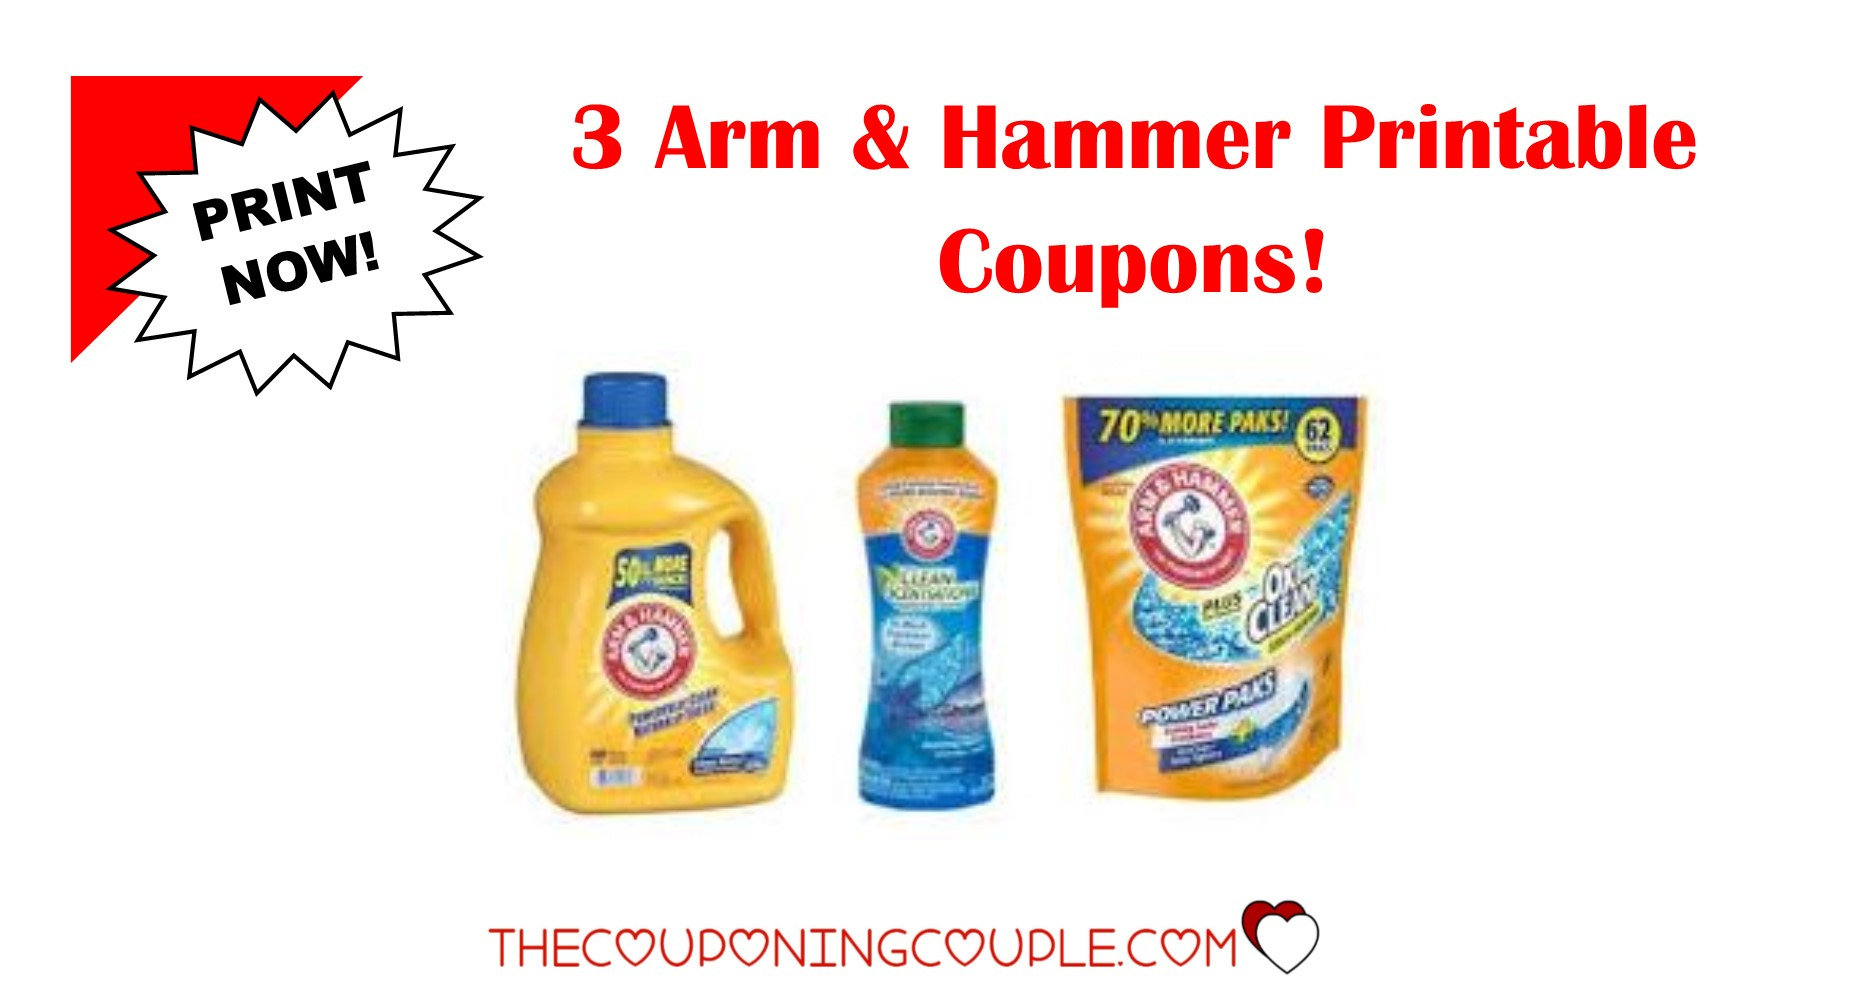 3 Arm & Hammer Printable Coupons ~ Print Now!! Don't Miss Out! - Free Printable Coupons For Arm And Hammer Laundry Detergent